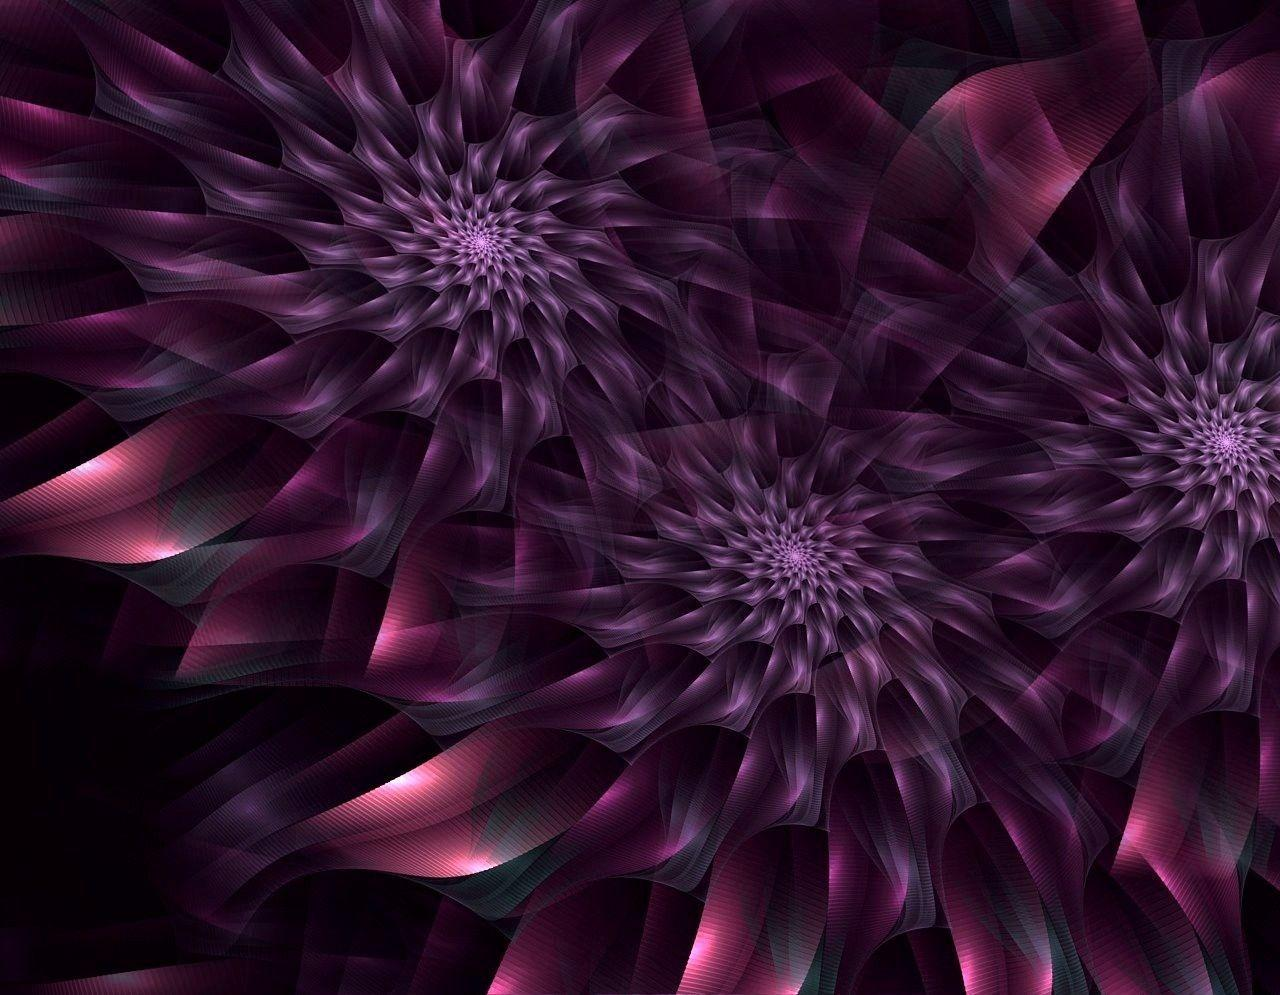 Dahlia wallpapers wallpaper cave flowers for black dahlia flower wallpaper izmirmasajfo Gallery